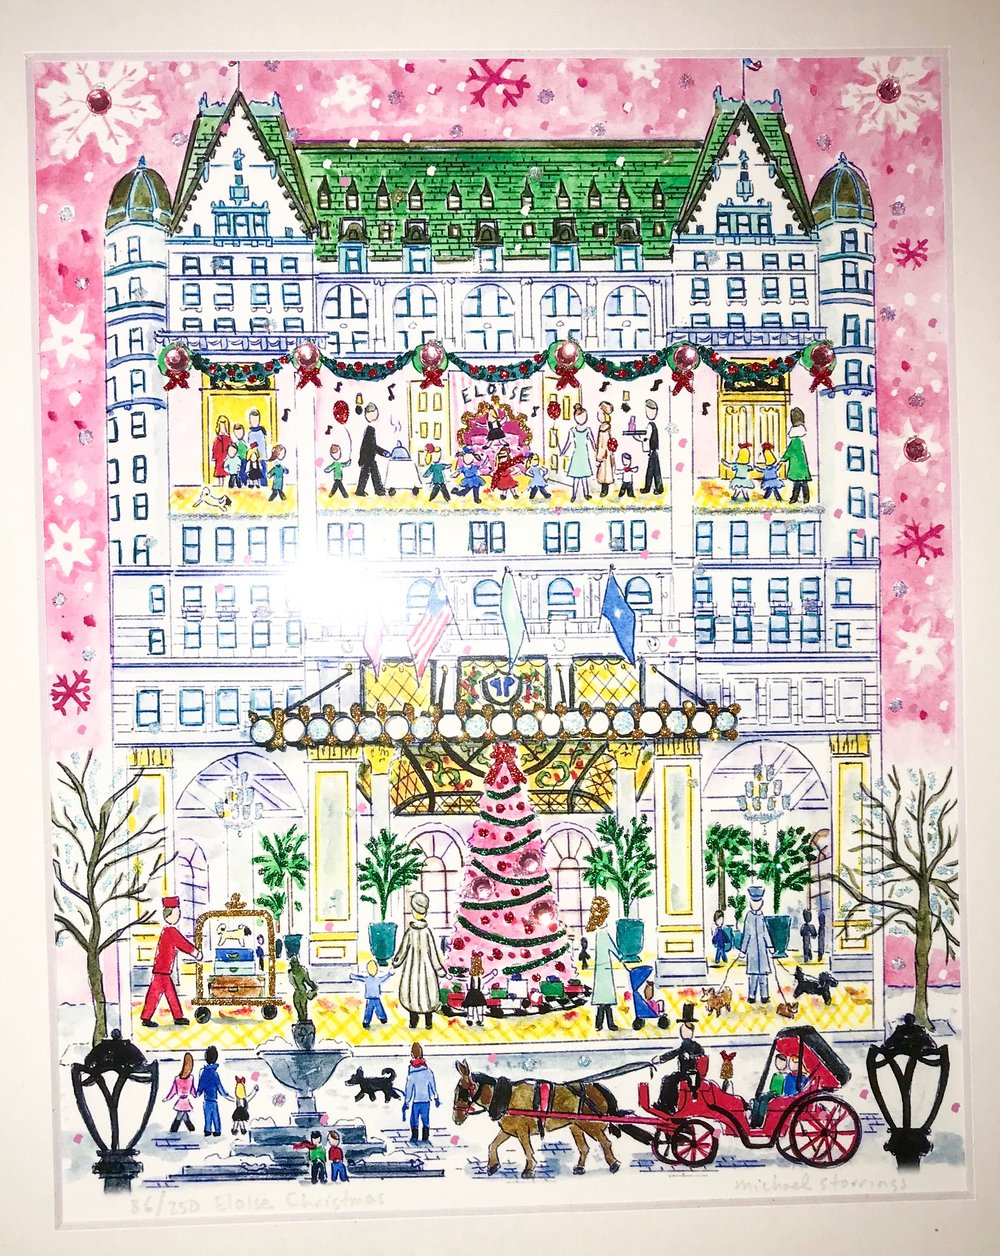 Michael stirrings does an Eloise print every year, and this is his print from 2018 of the Eloise Suite at Christmas!